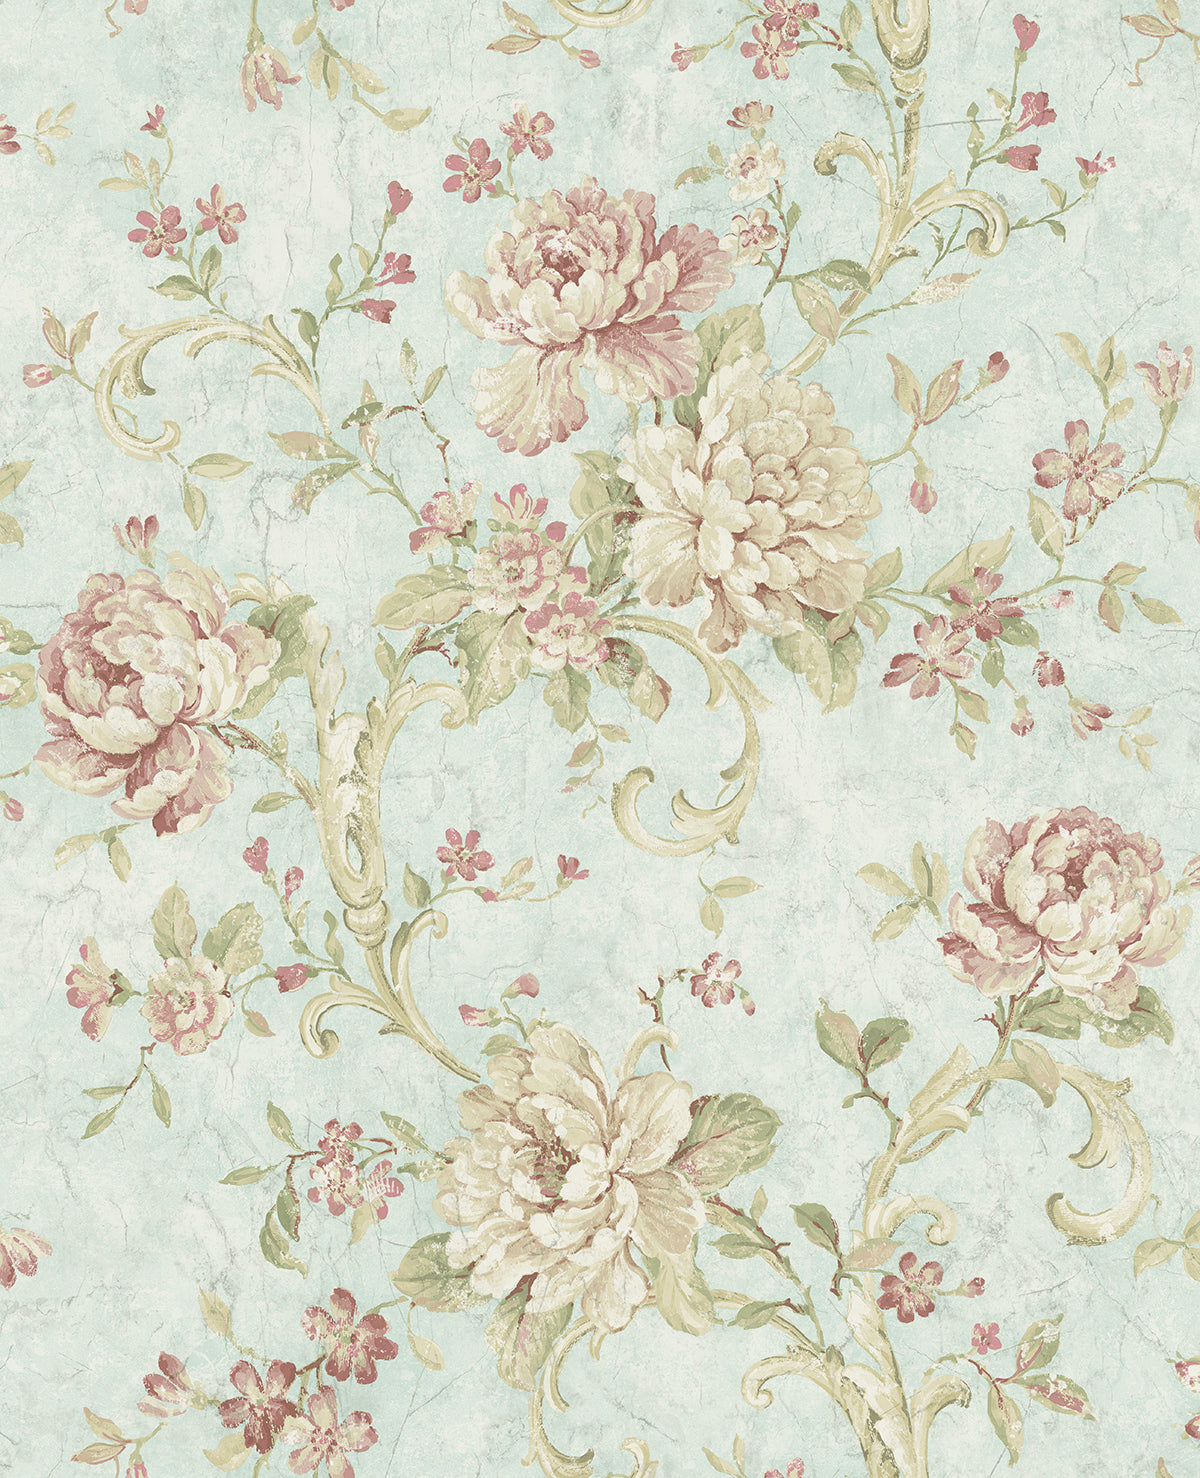 Antiqued Rose Wallpaper In Morning Rose From The Vintage Home 2 Collec Burke Decor